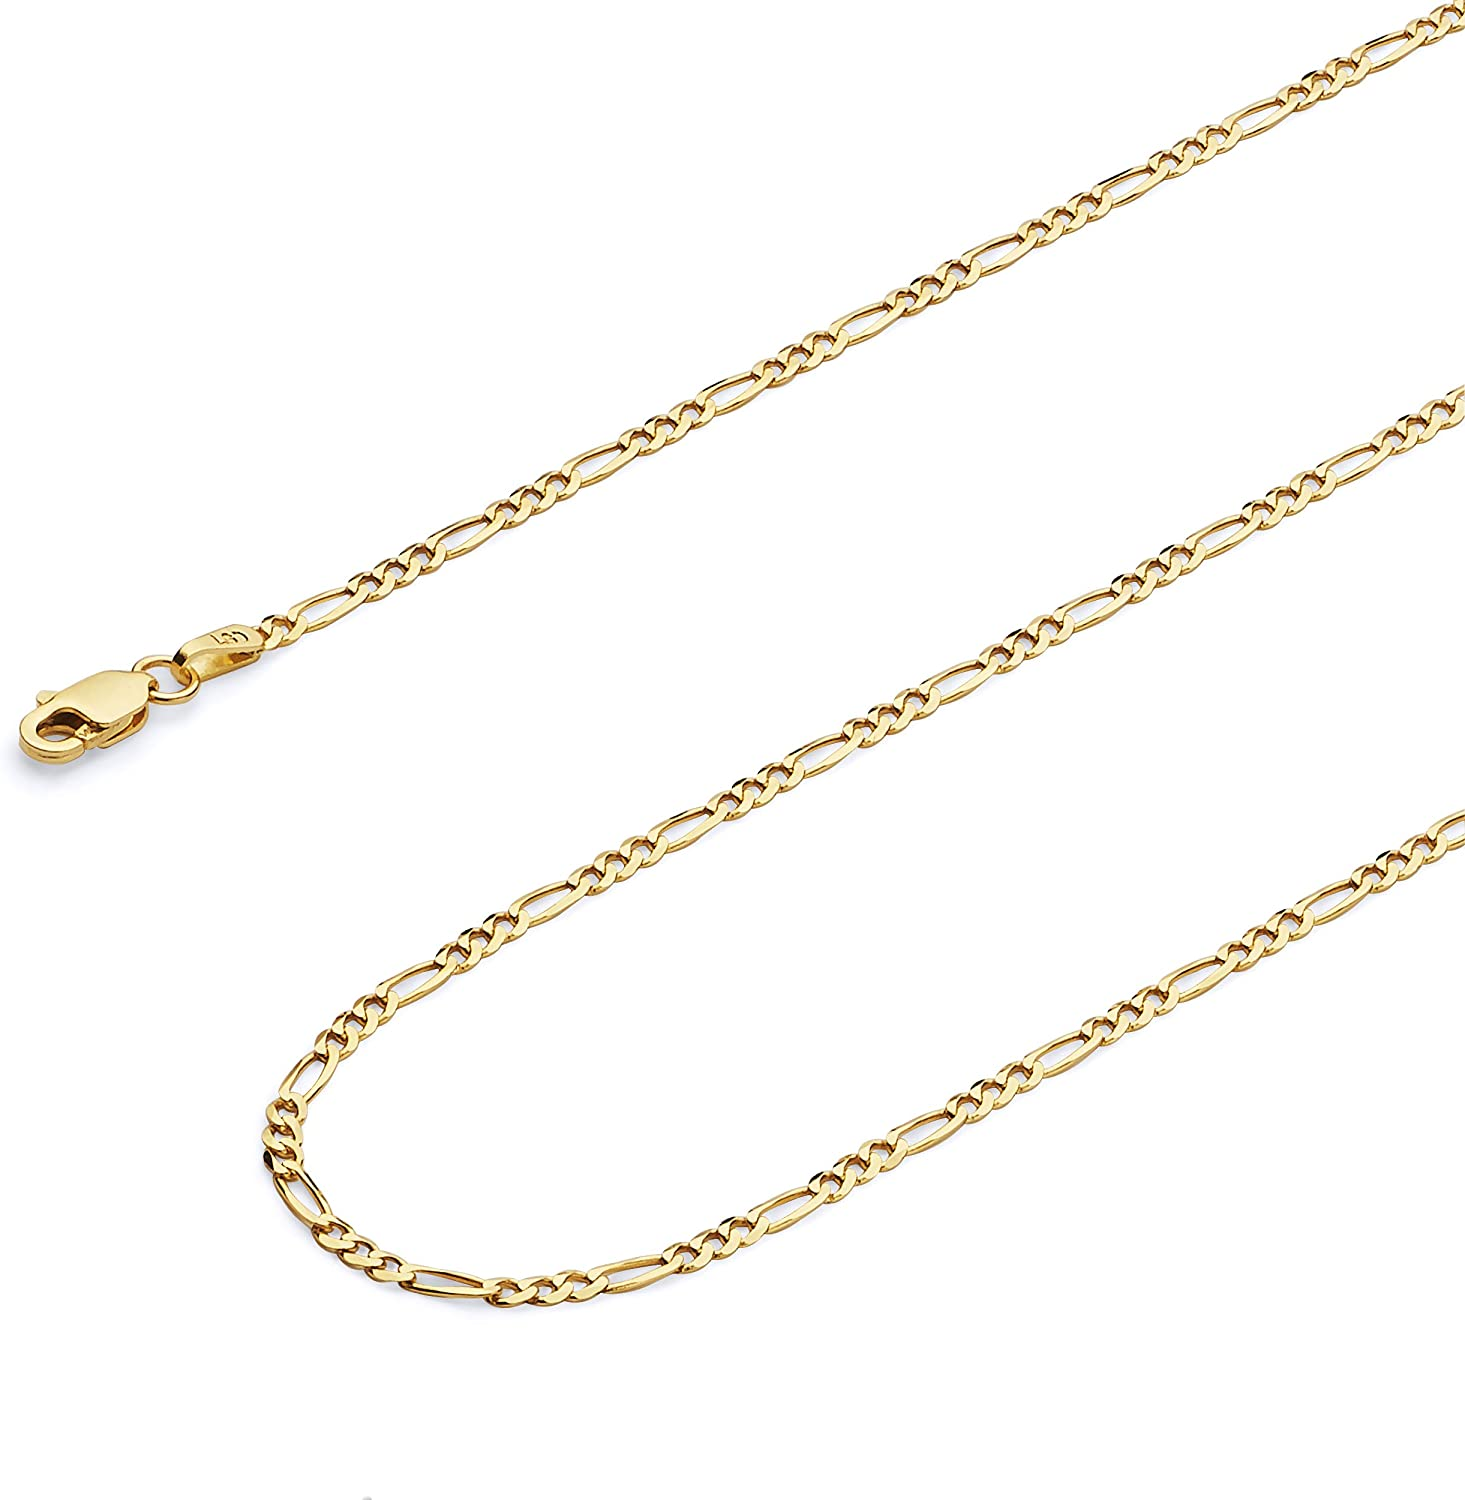 Wellingsale 14k Yellow Gold Solid 2mm Figaro Chain Necklace with Lobster Claw Clasp